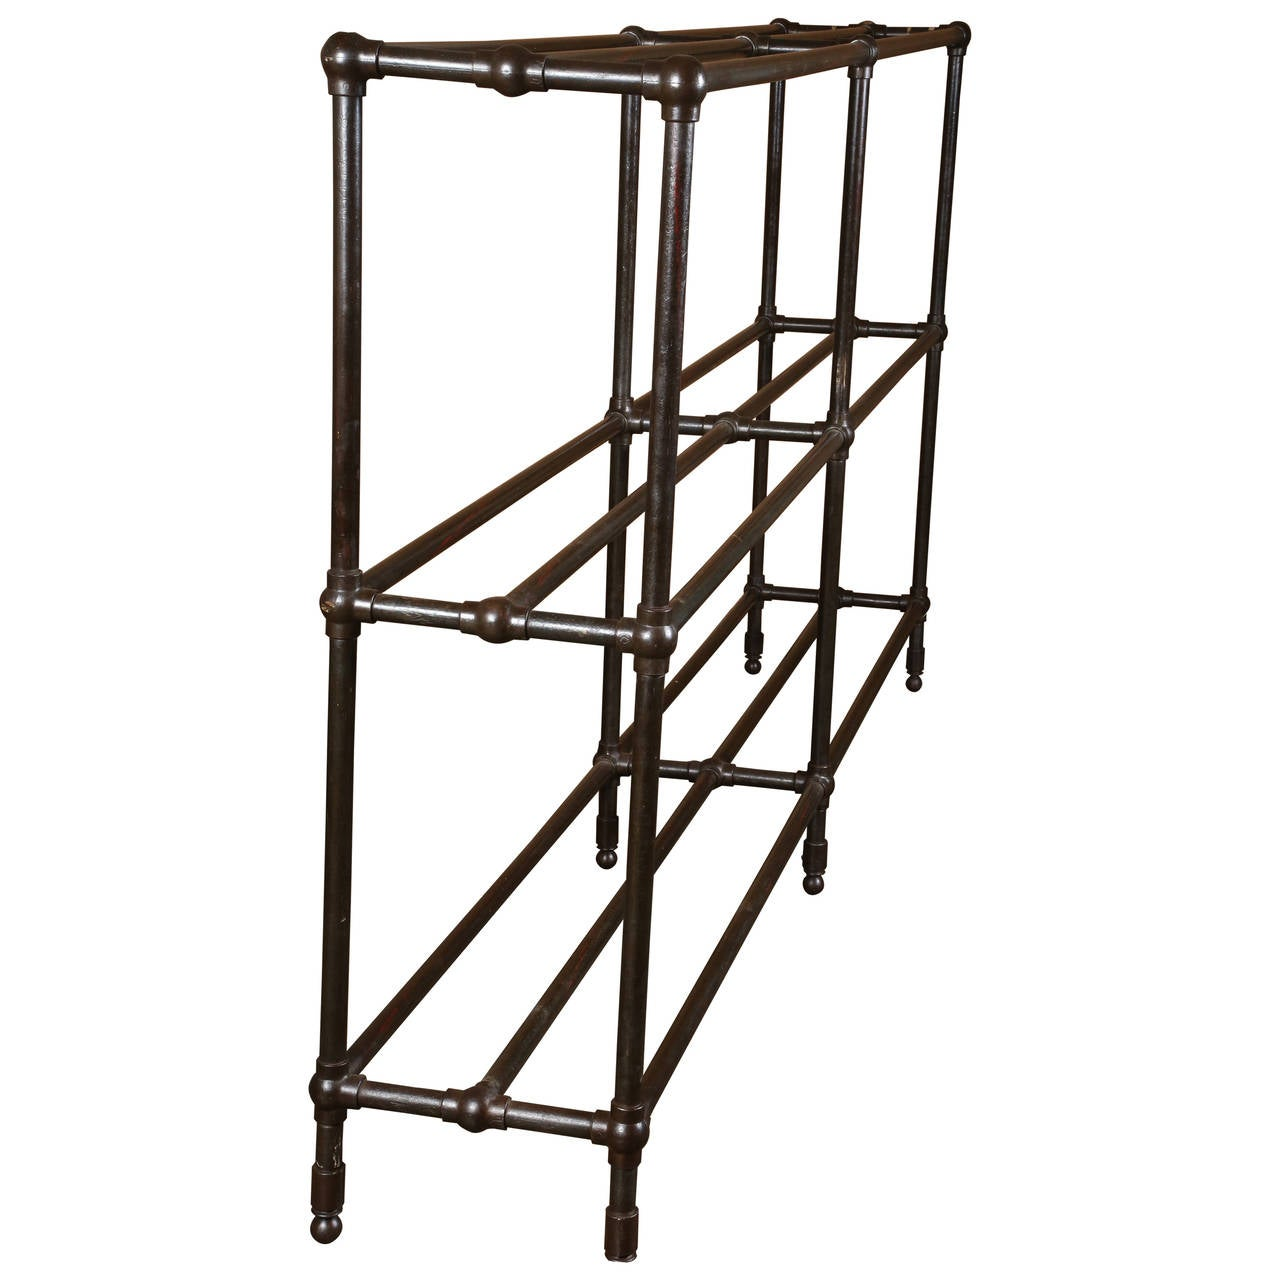 Vintage Industrial steel pipe shelving unit with steel poles and cast iron ball joints.